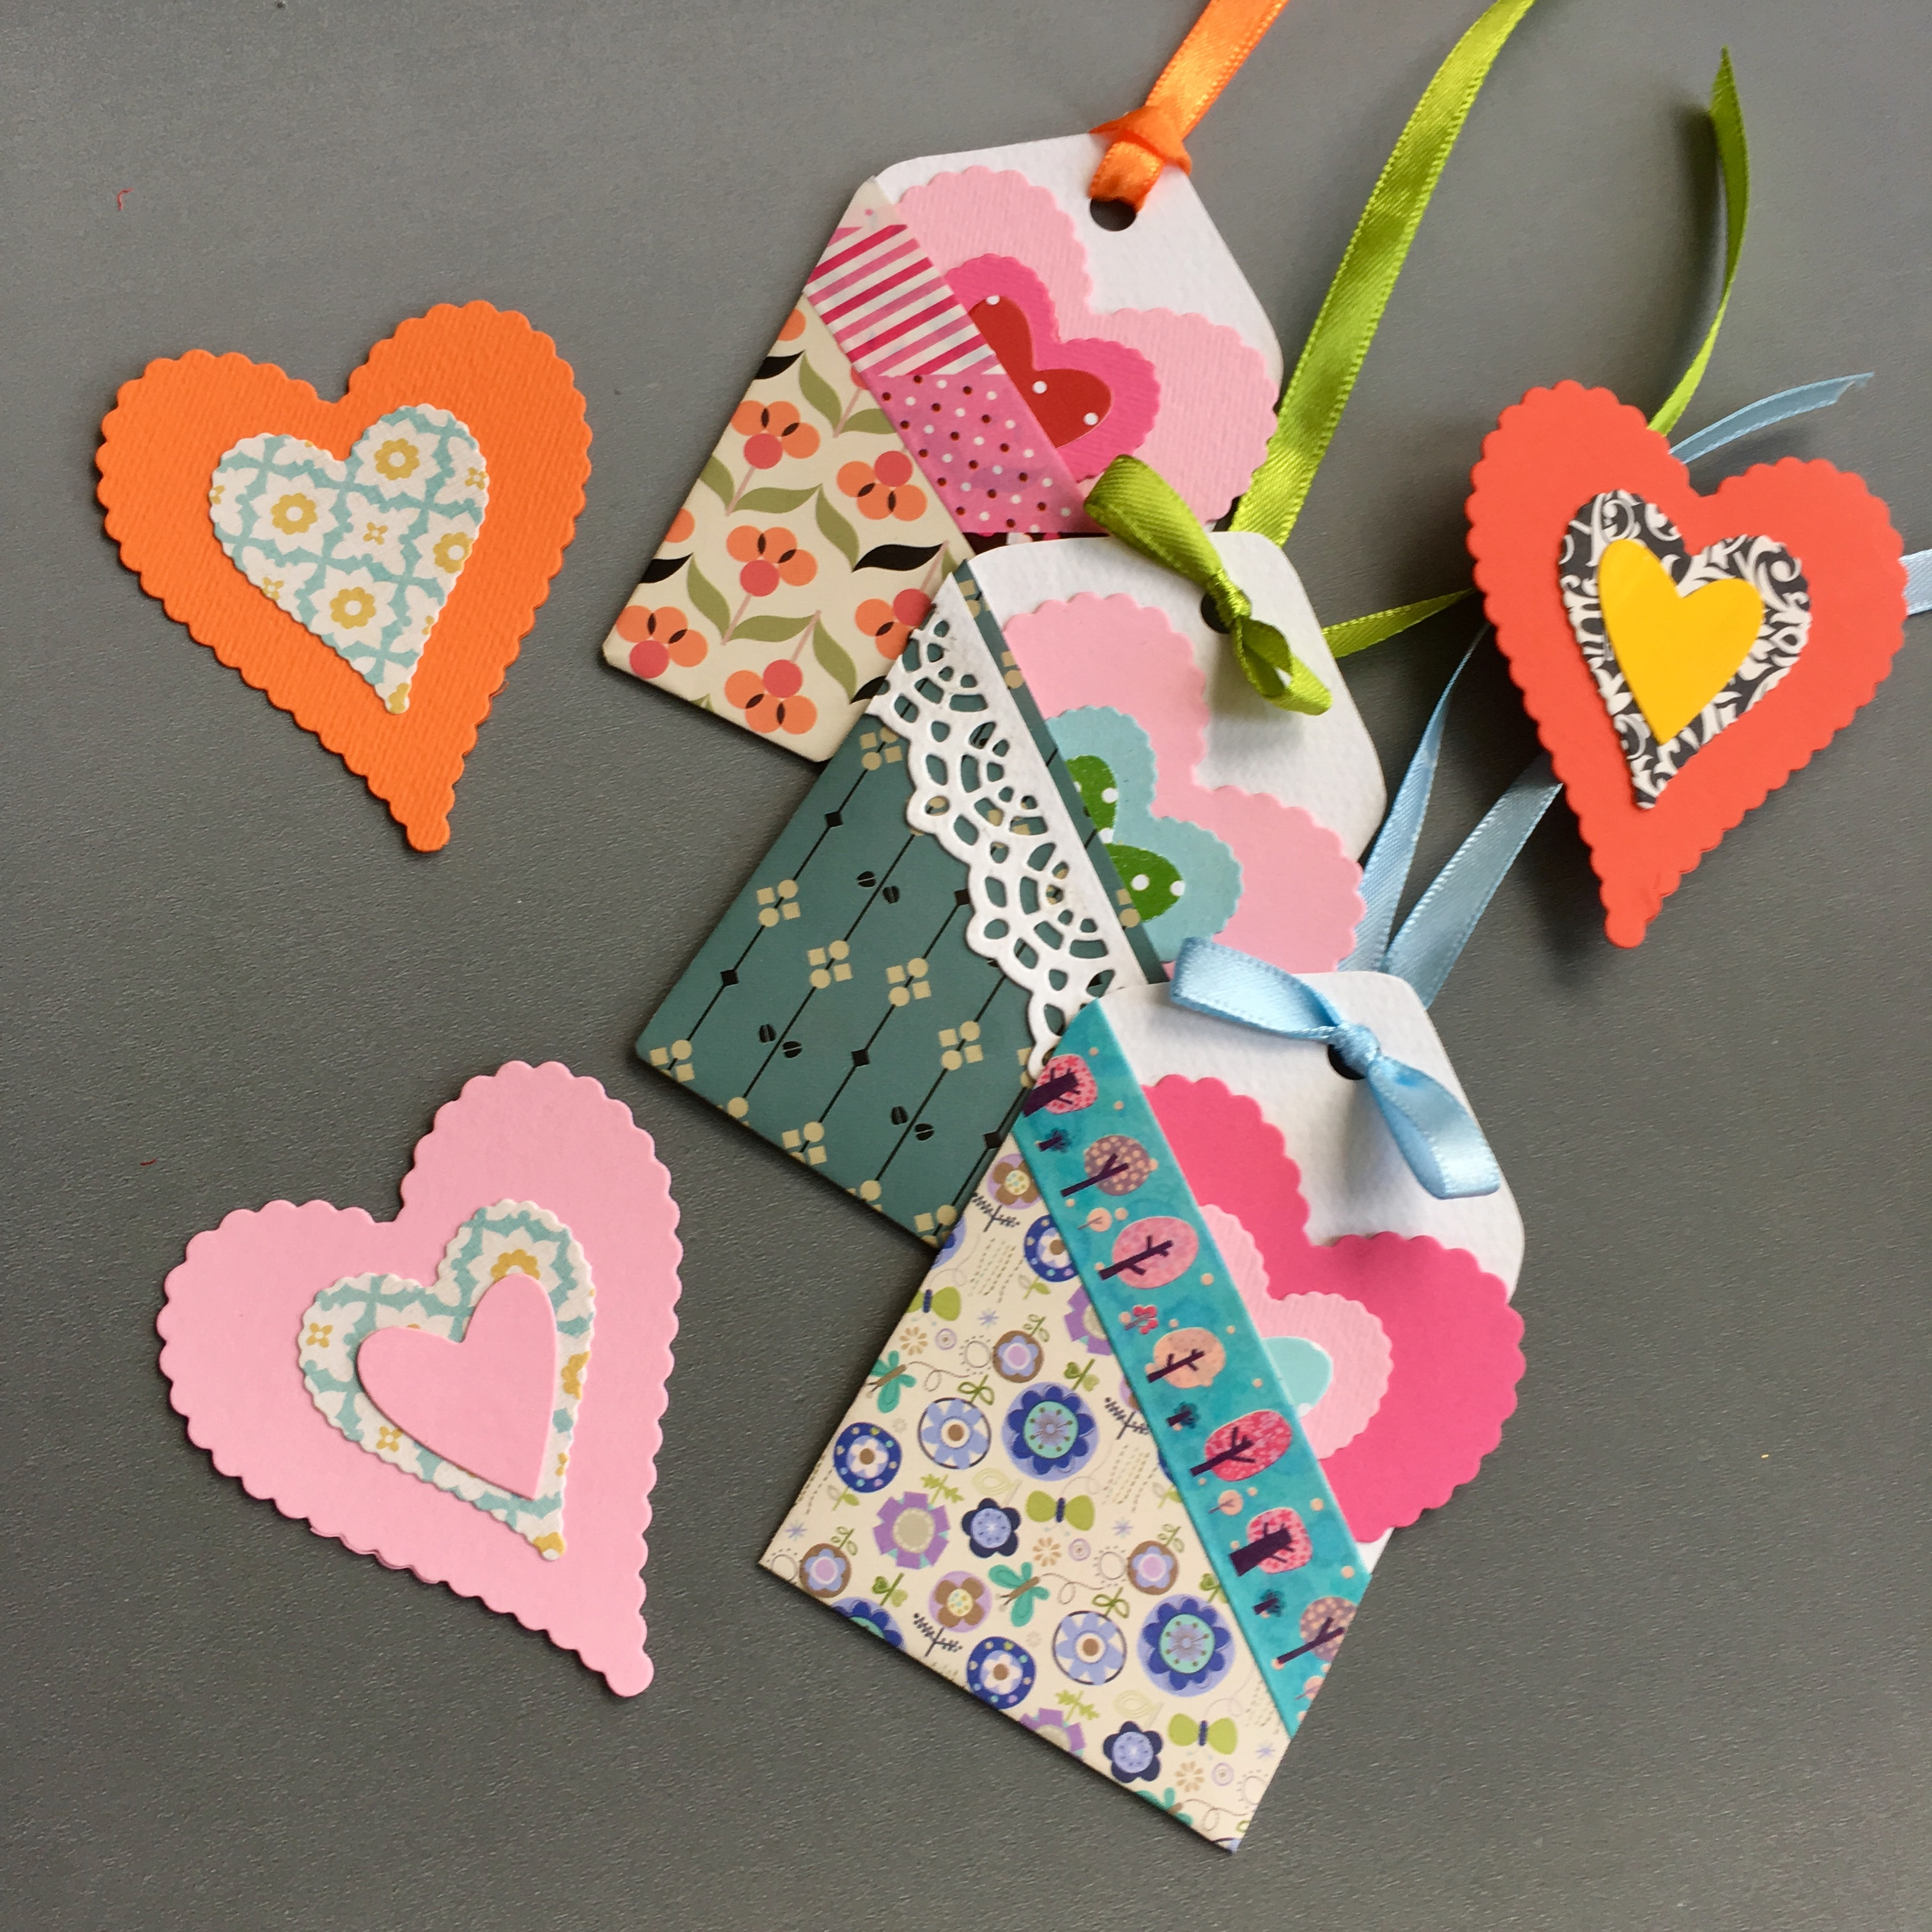 pocketed gift tags and hearts